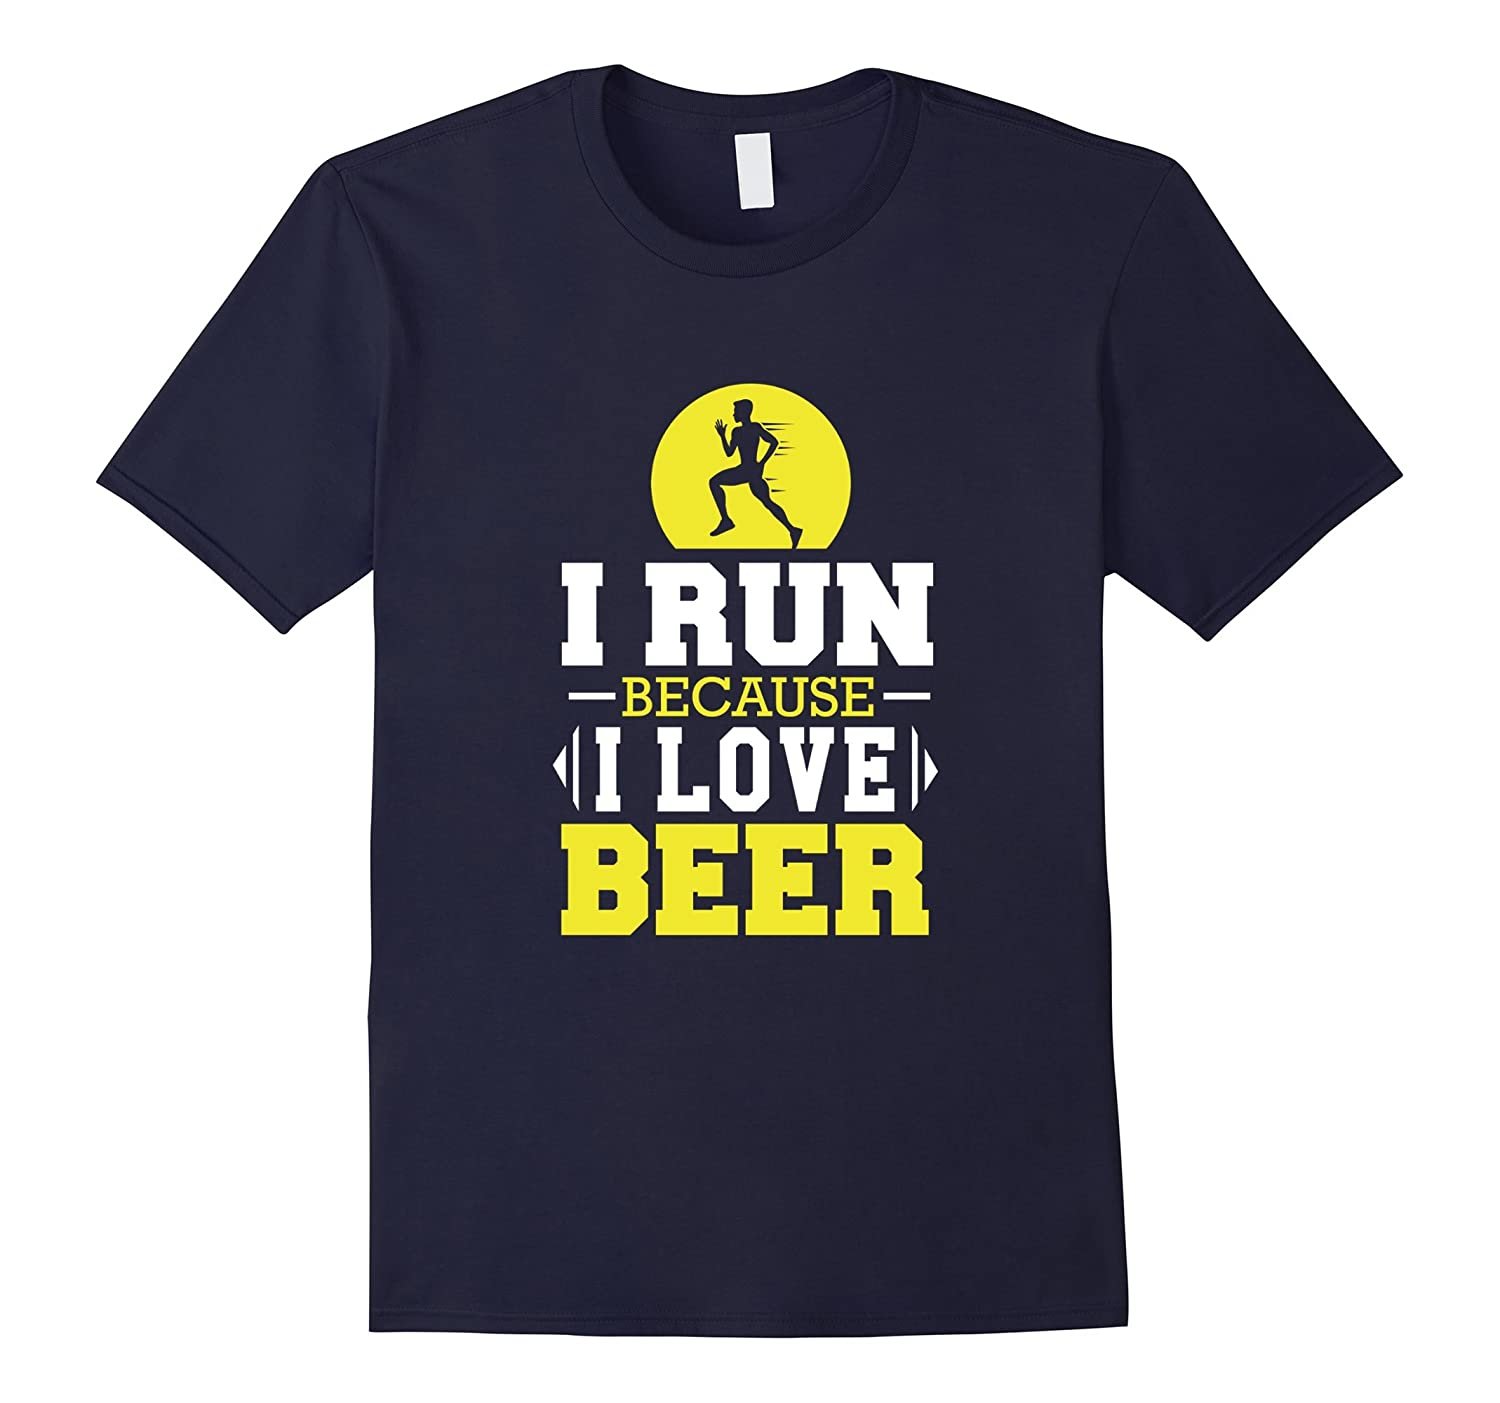 I Run Because I Love Beer Silly Funny T-Shirt for Runners-TJ